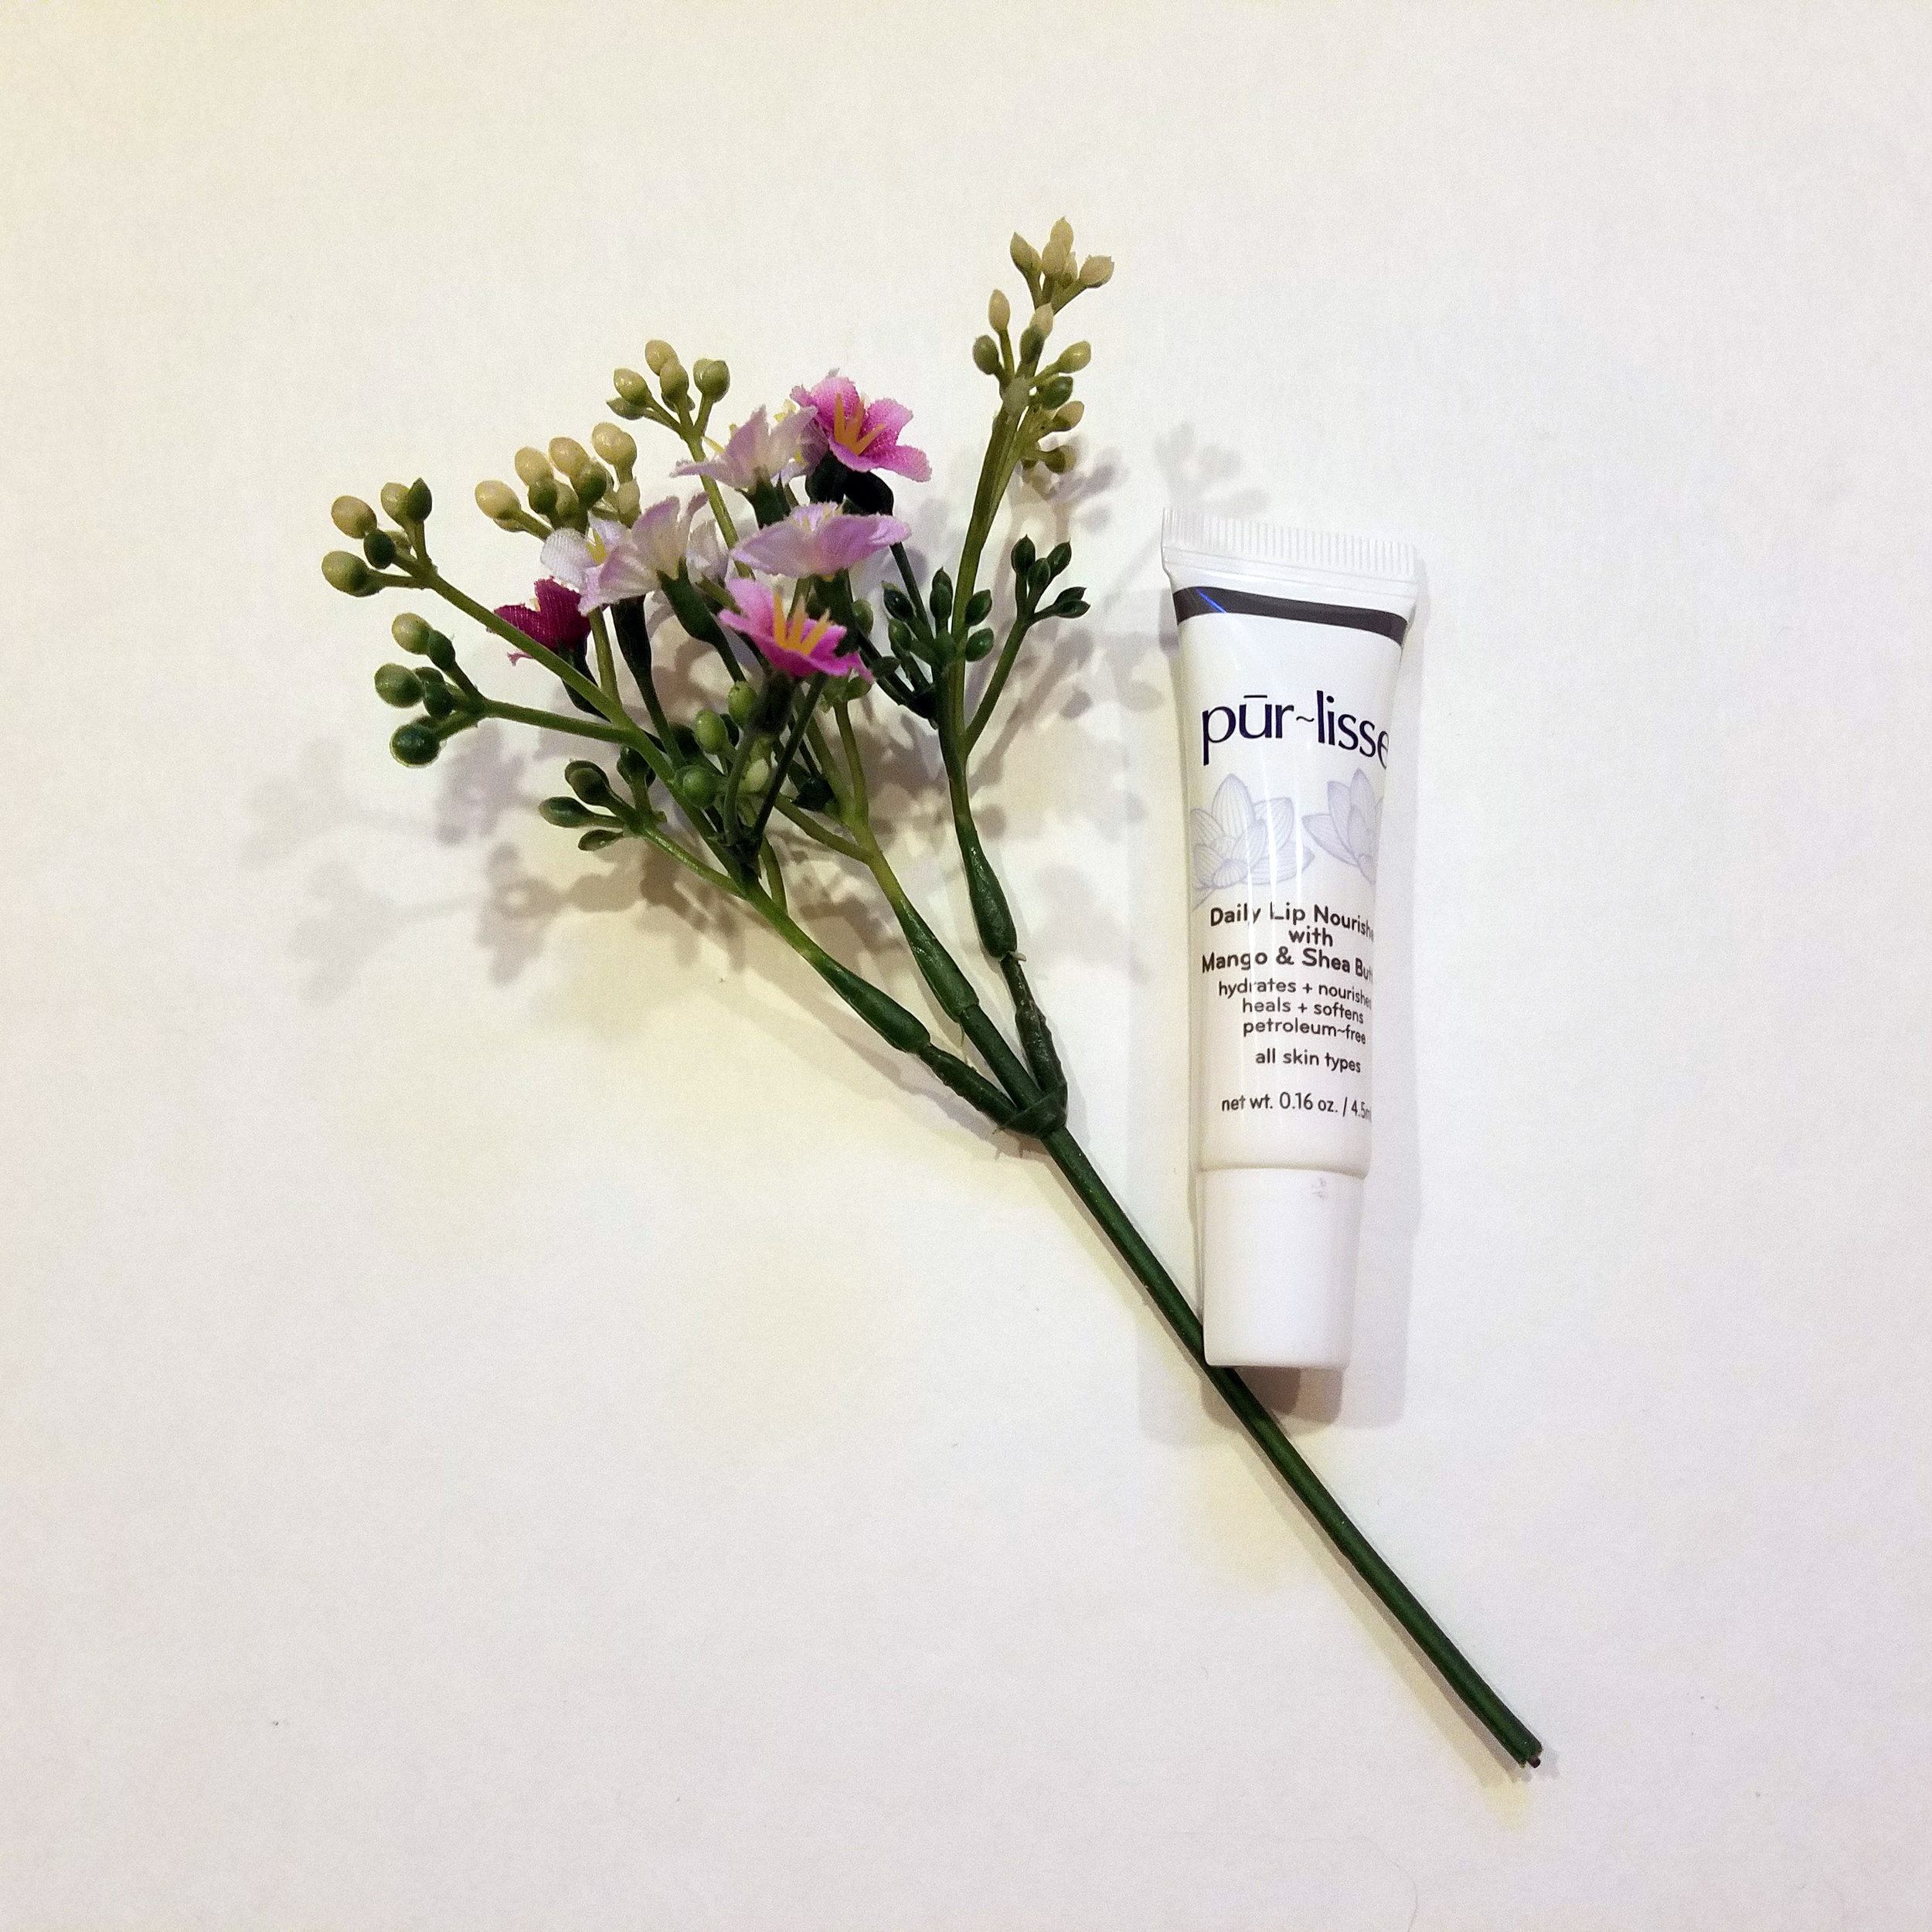 pur-lisse daily lip nourisher with mango and shea butter